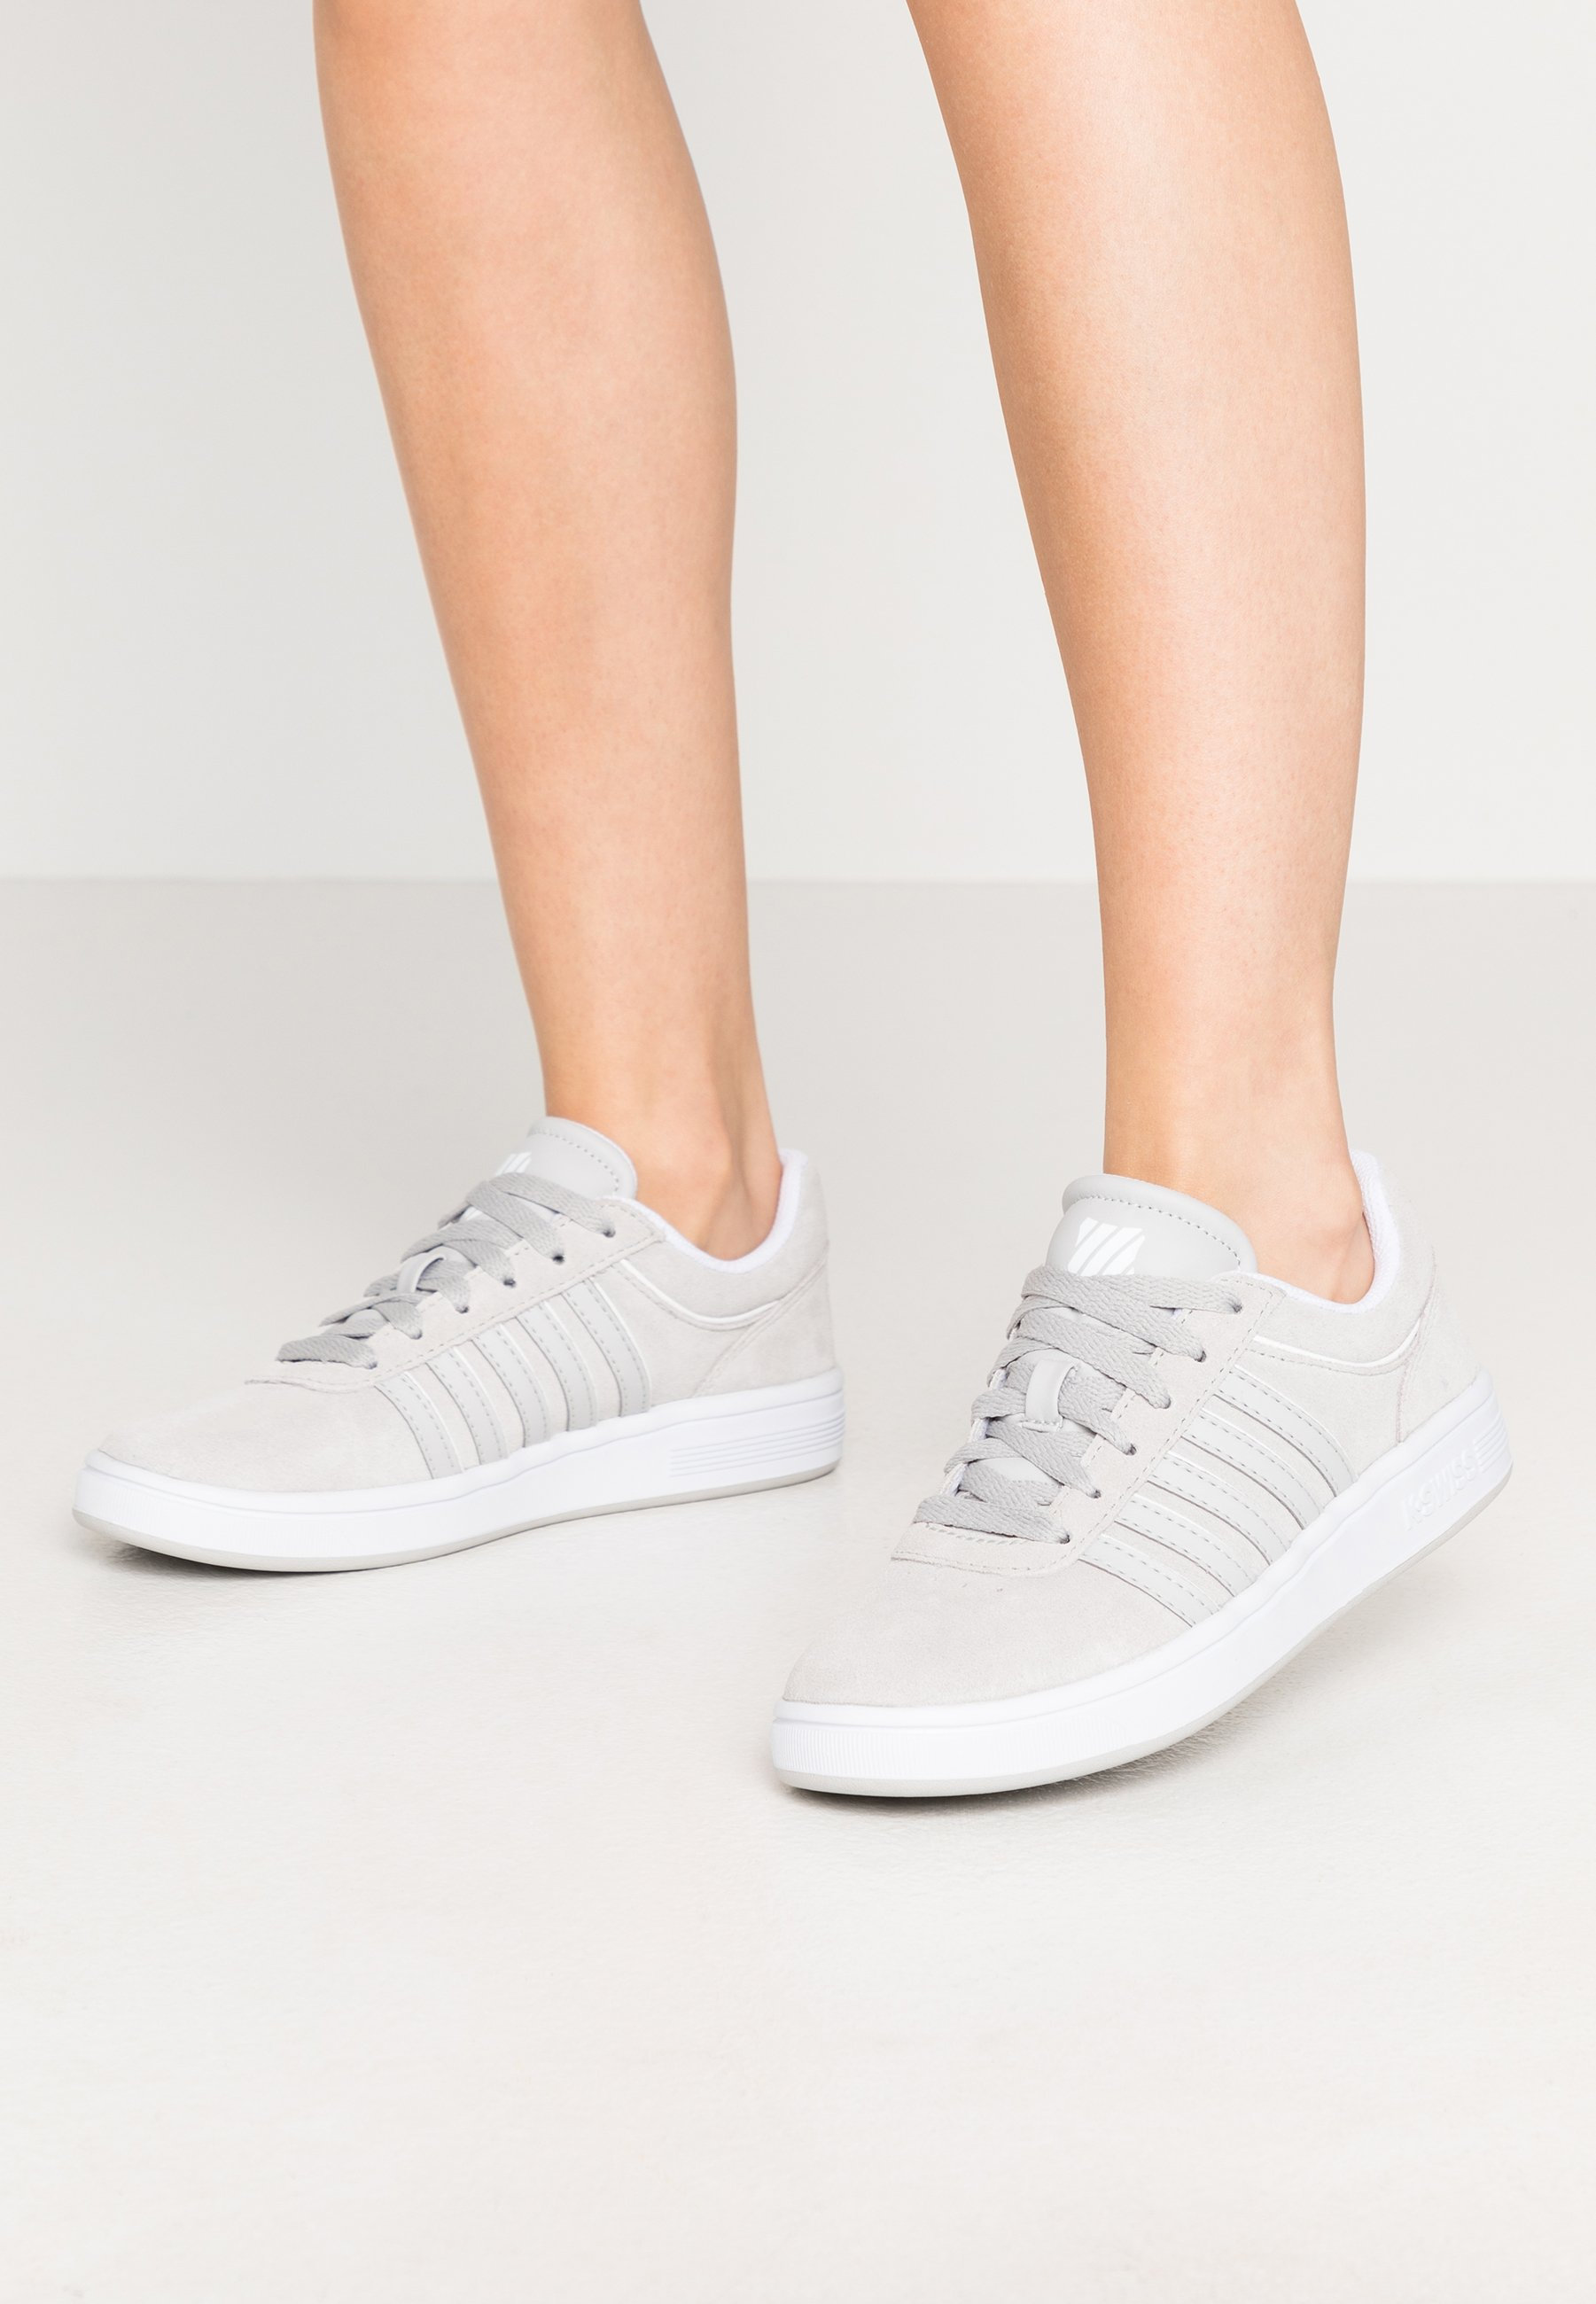 K Swiss Kswiss Court Frasco Sneakers In White And Pearl Pink